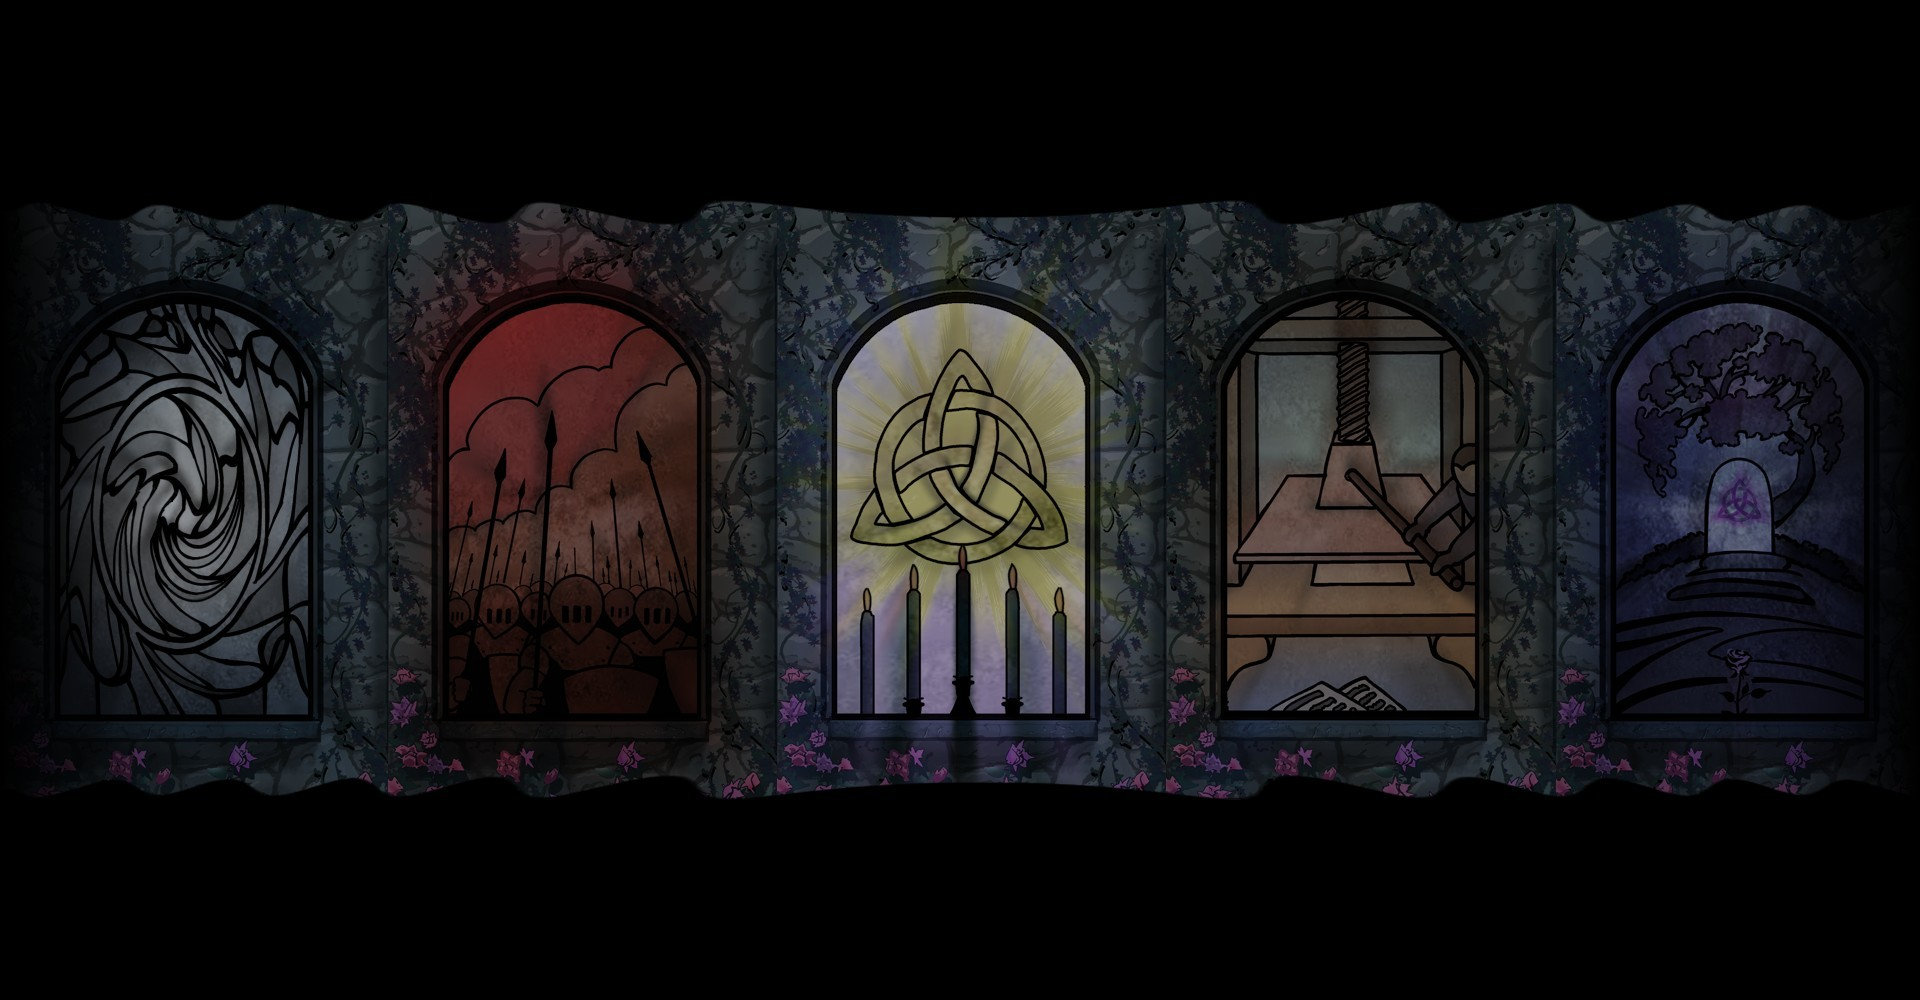 Long Live The Queen Background Stained Glass Windows.jpg